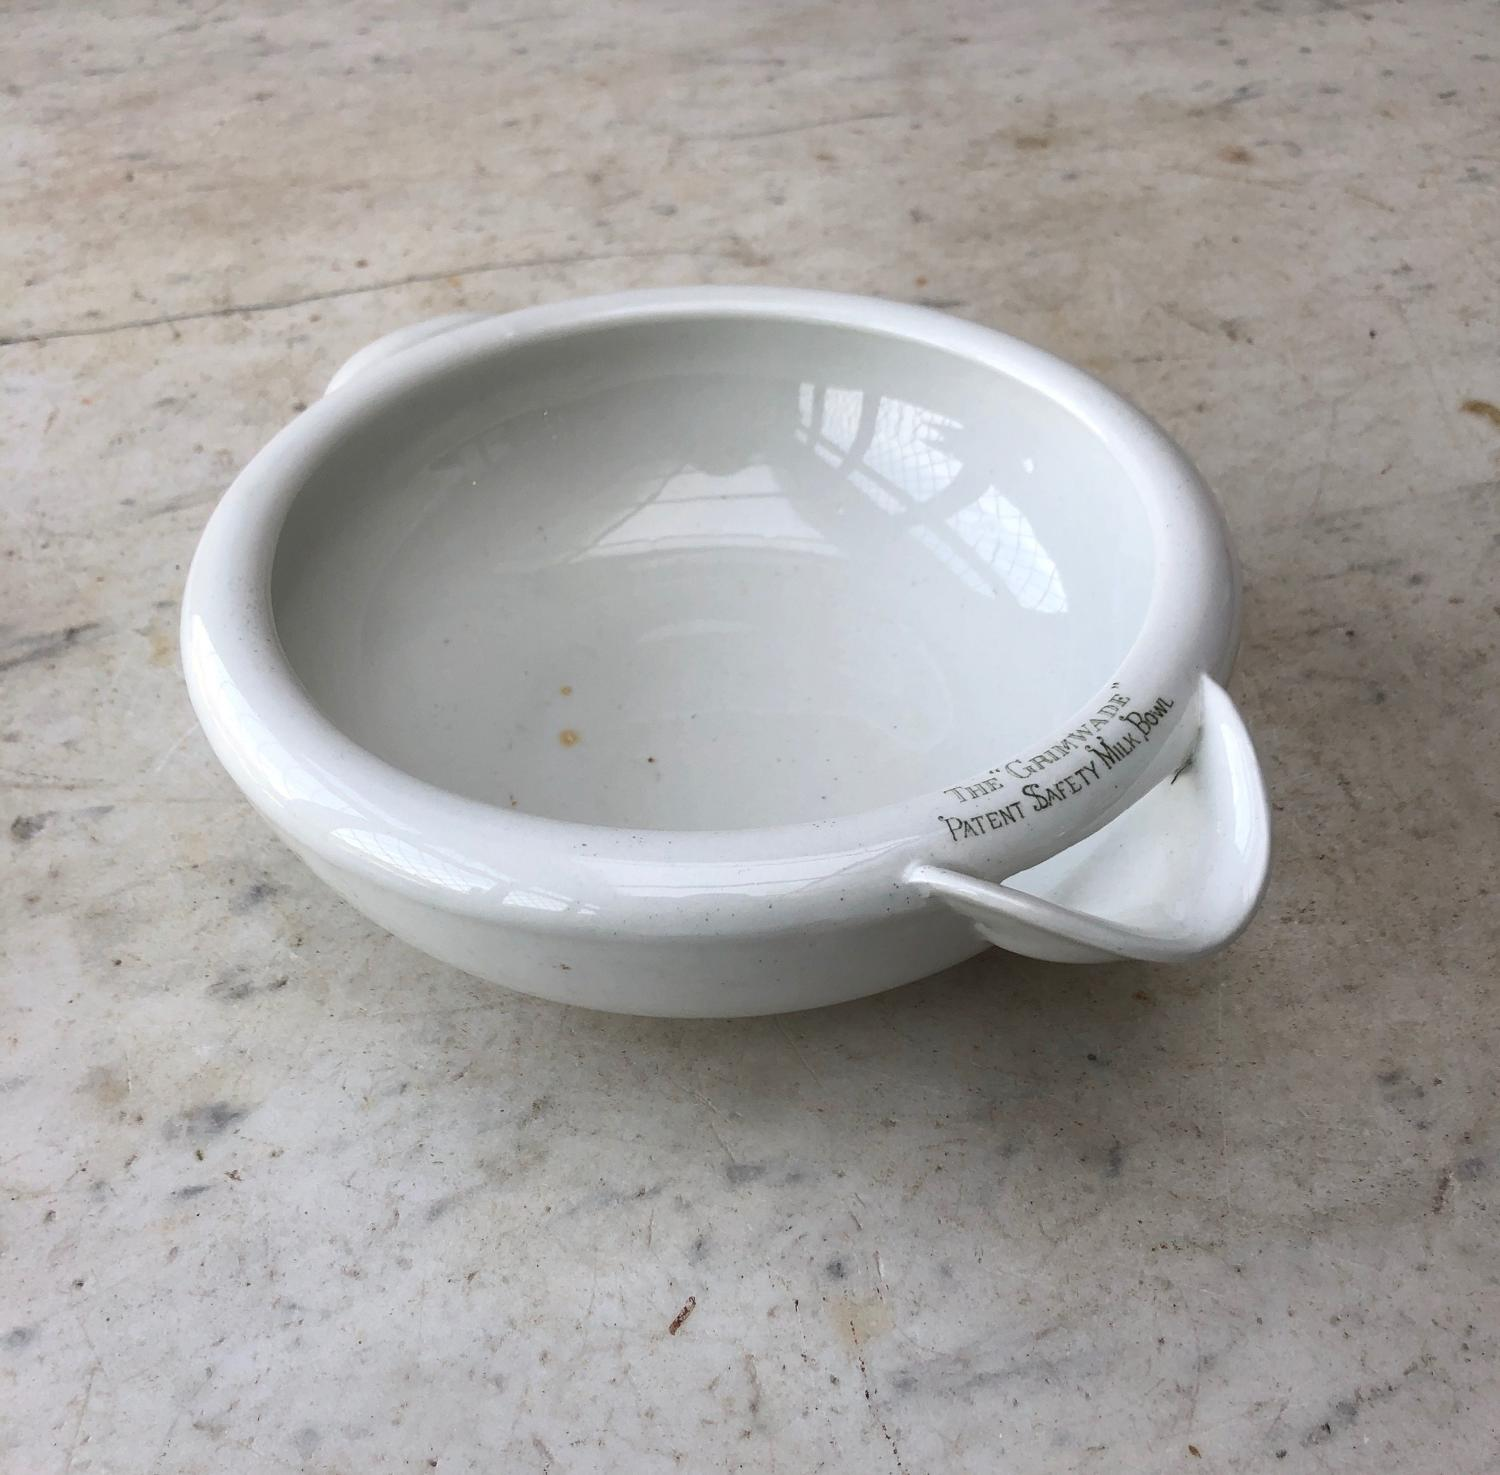 Early 20thC Grimwades Safety Milk Bowl - Nicer Version Writing on Top